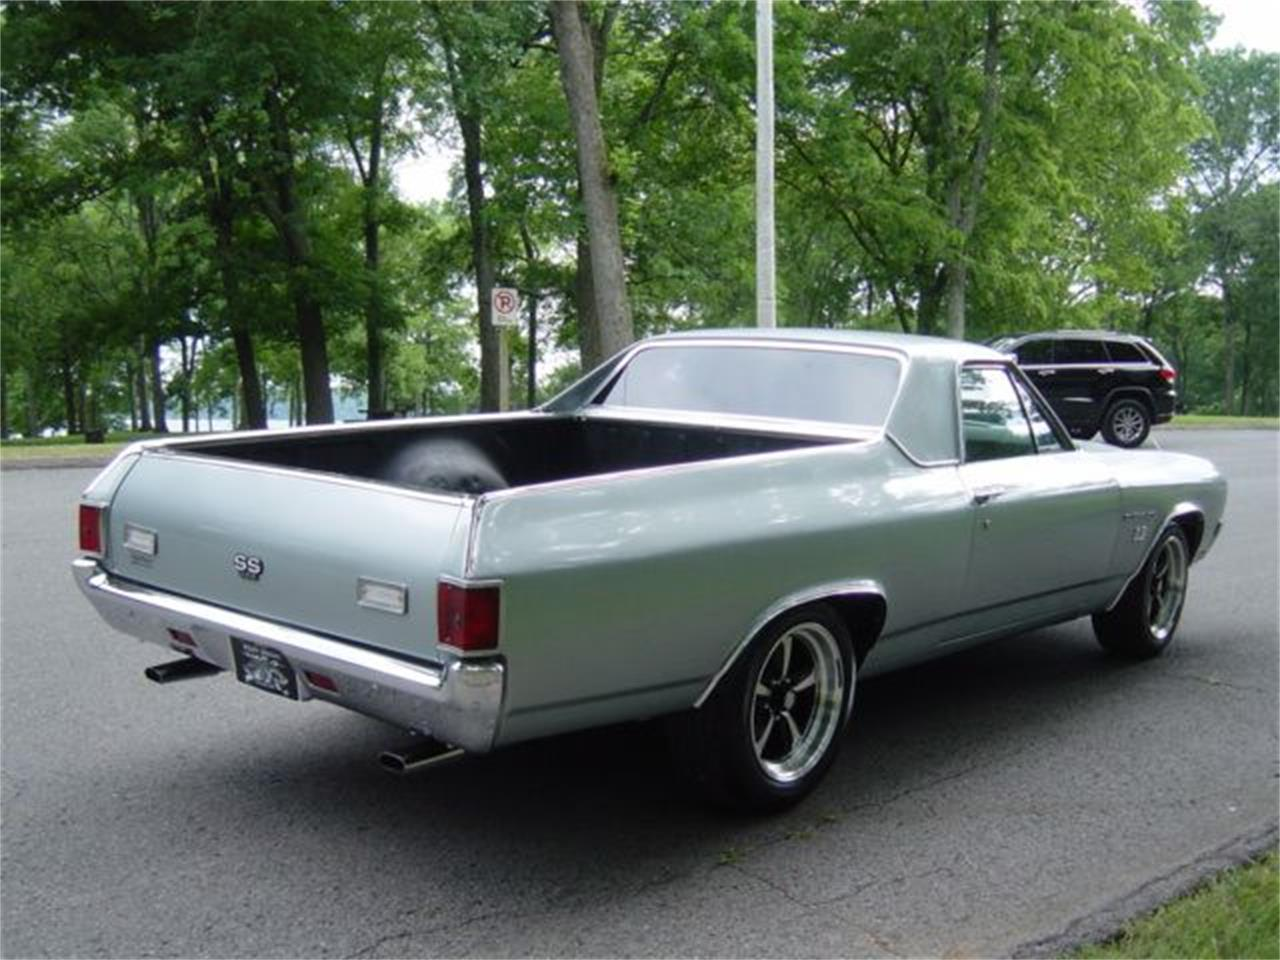 1970 Chevrolet El Camino (CC-1359228) for sale in Hendersonville, Tennessee